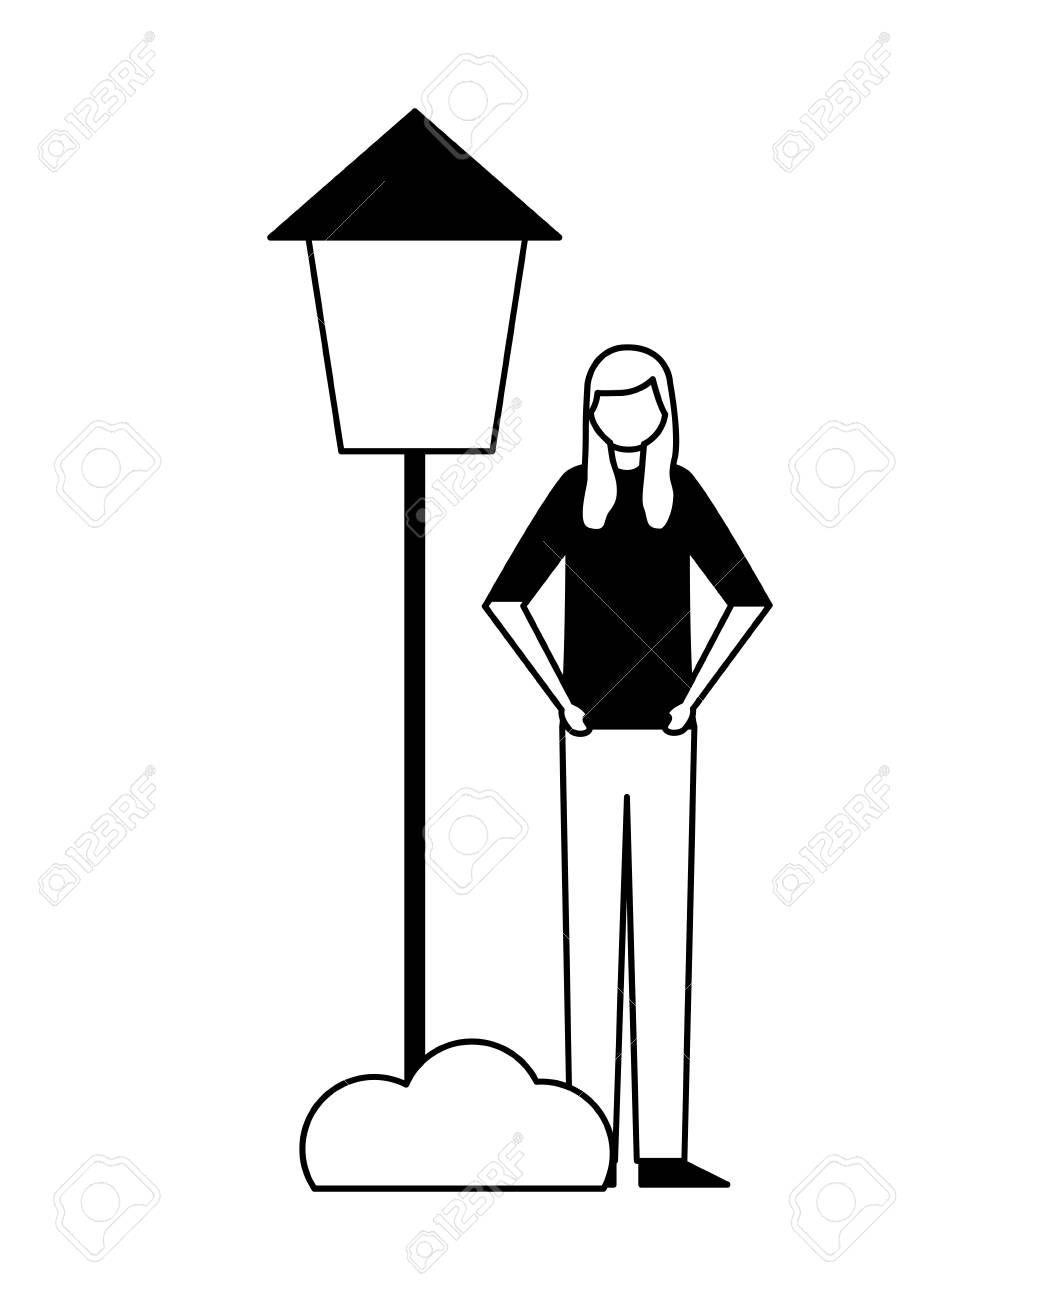 Woman Standing With Post Lamp Bush Vector Illustration Spon Post Standing Woman Lamp Illustration Vector Illustration Illustration Art